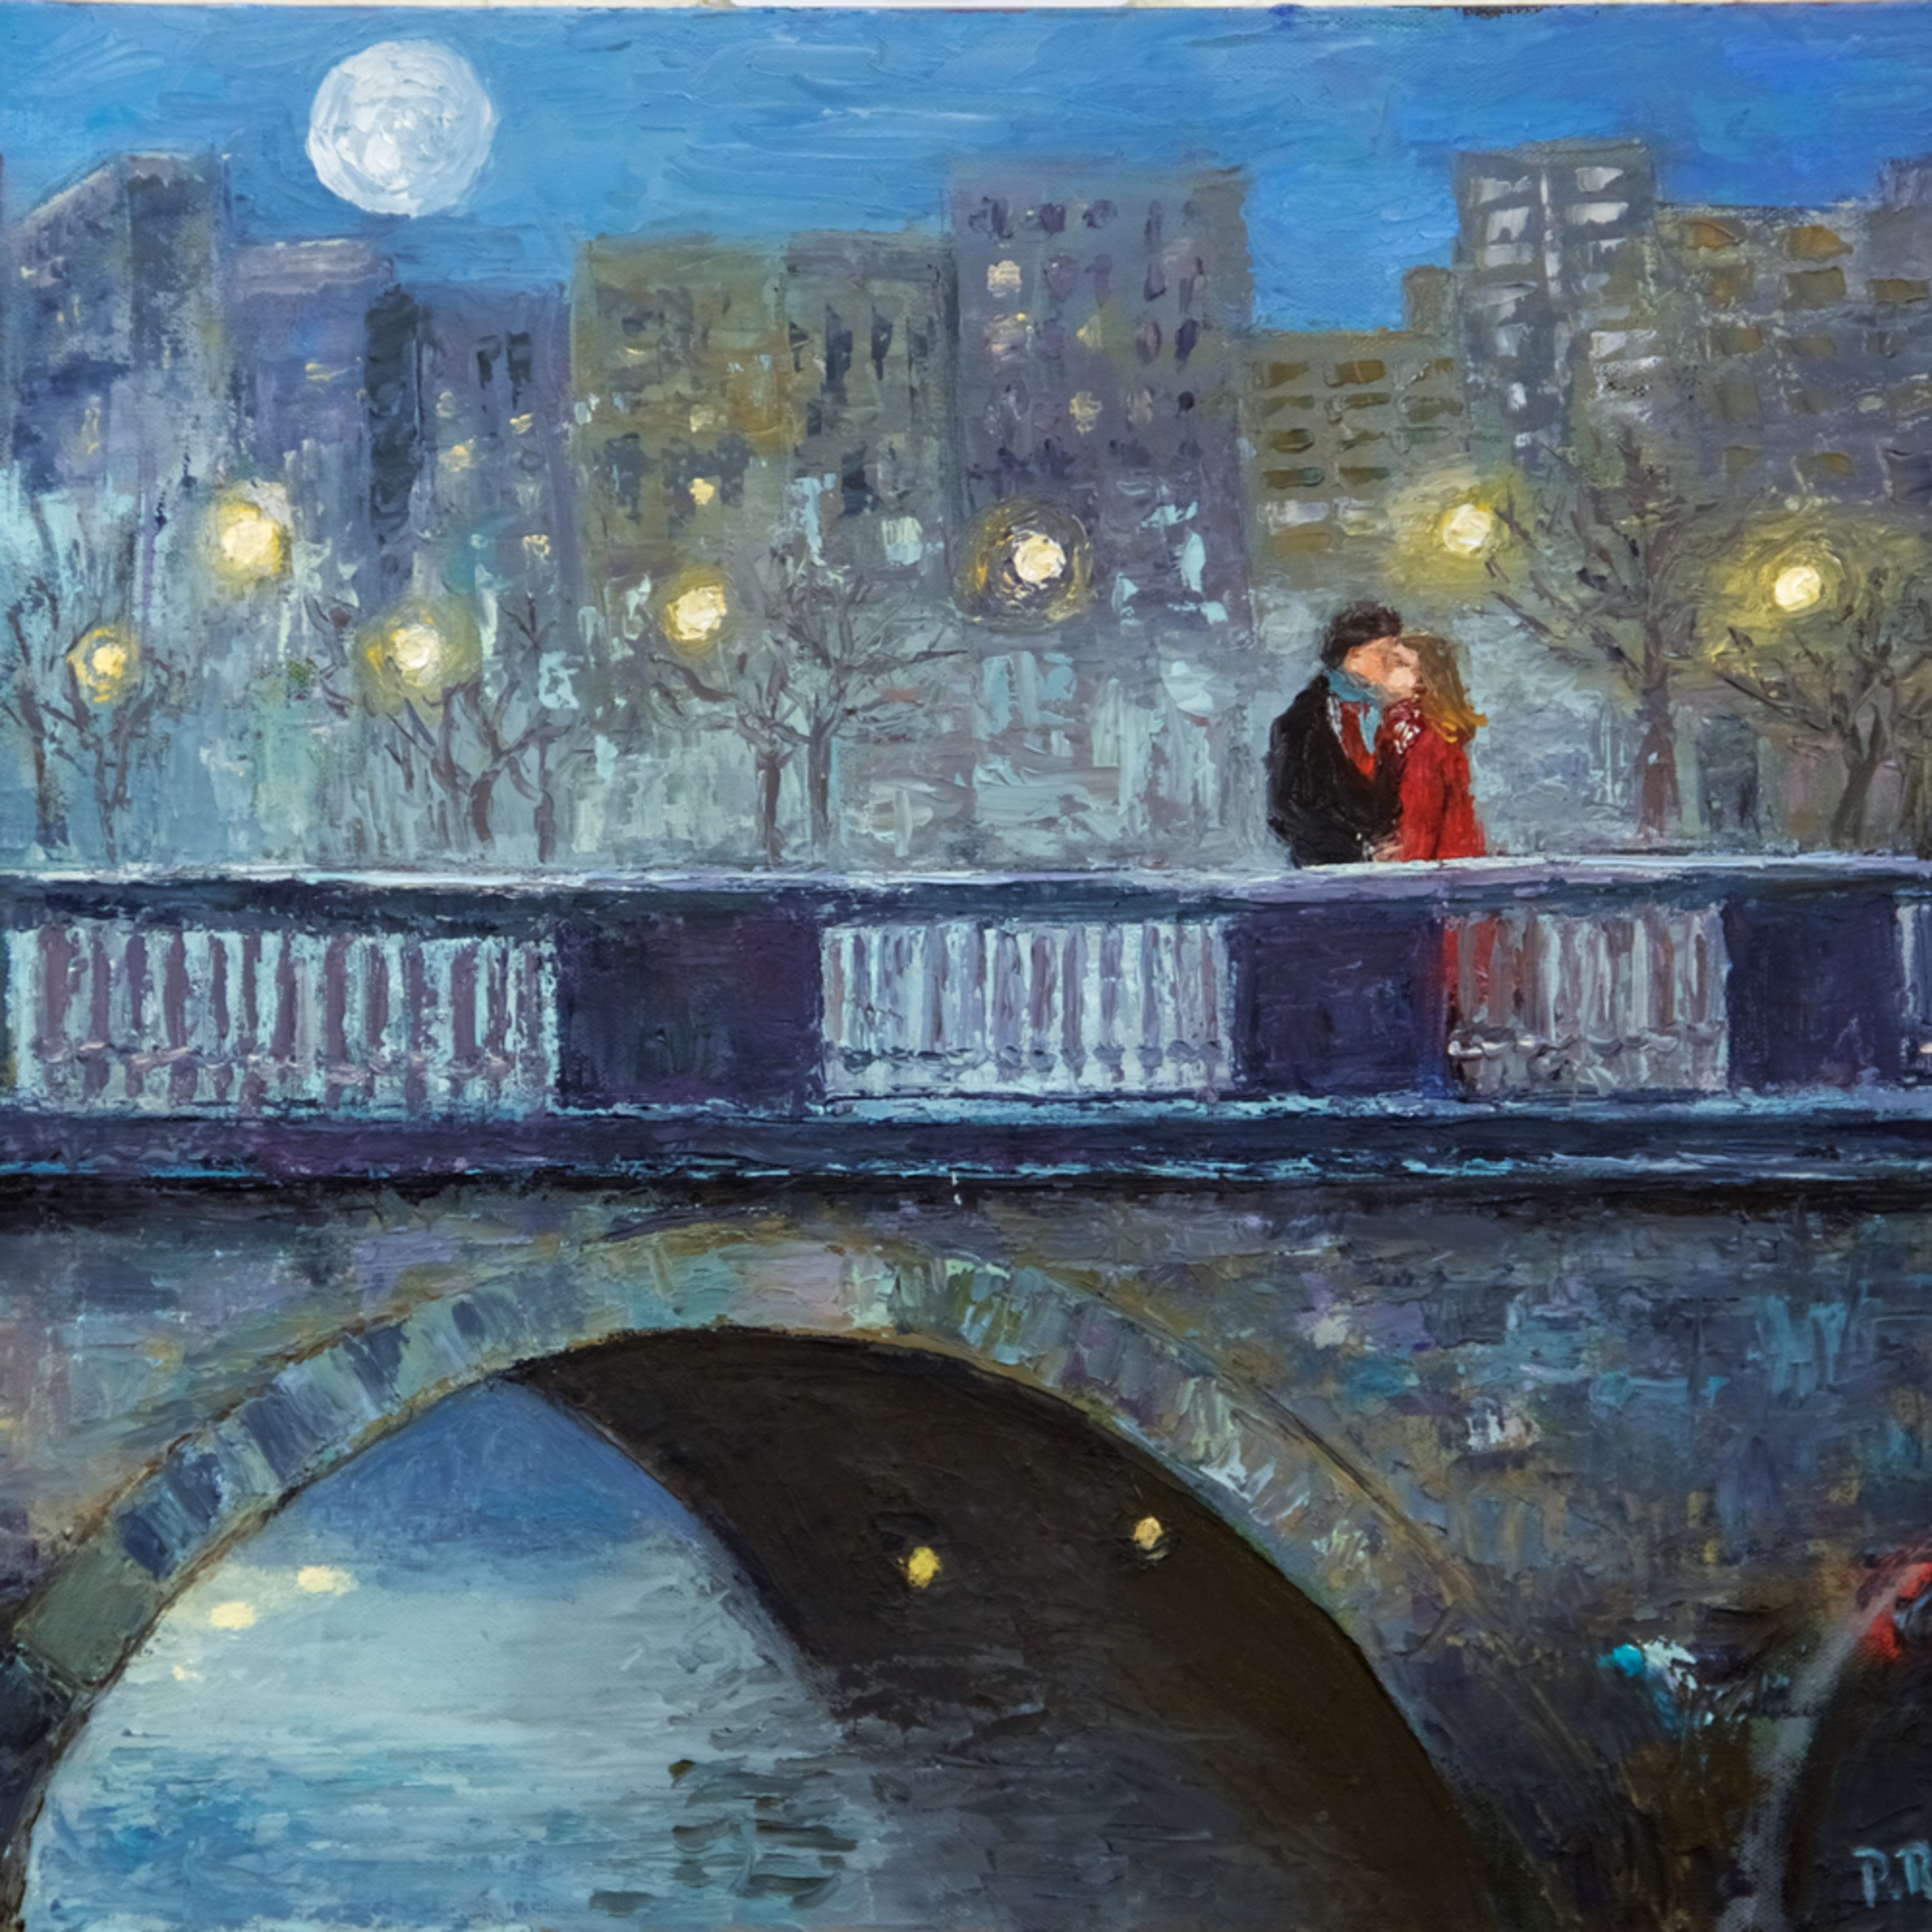 Lovers kiss on dublin bridge us7fxm